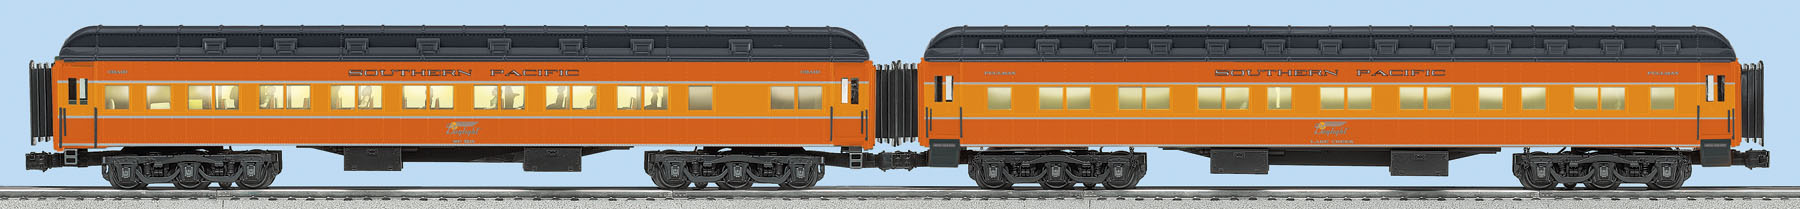 "Lionel 6-25507 SP Lines Heavyweight 2 pack ""Daylight"""